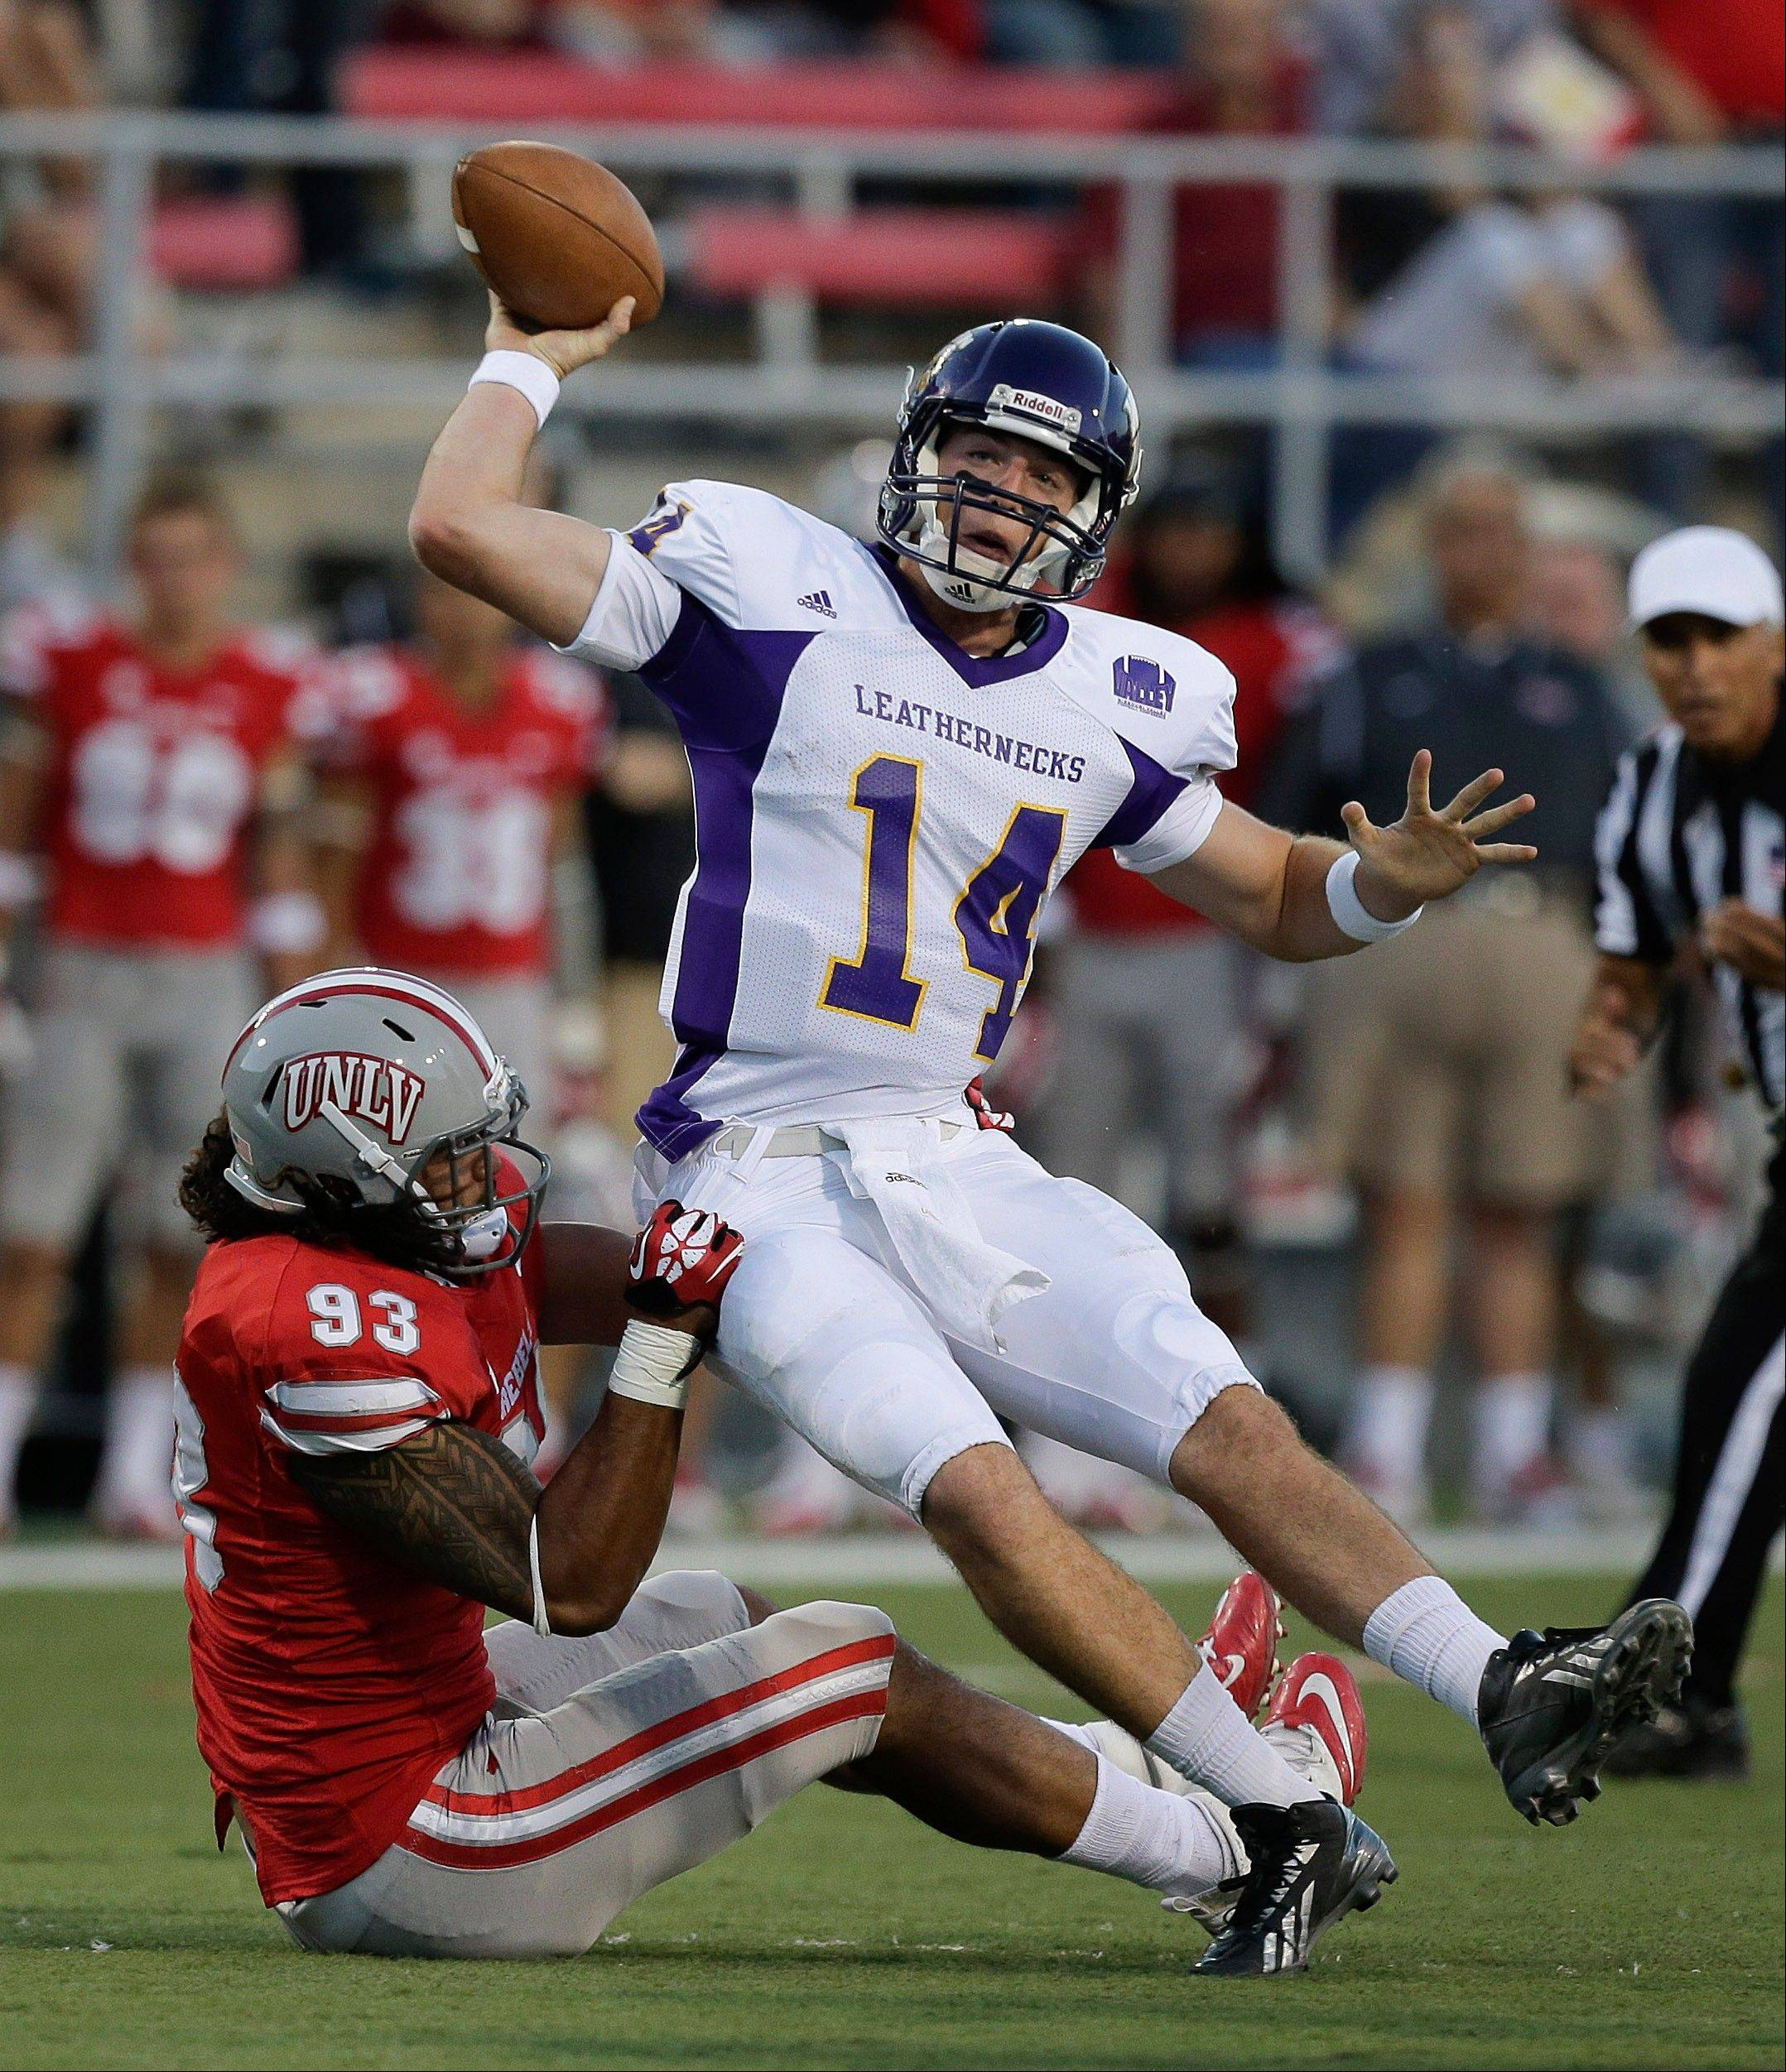 UNLV lineman Sonny Sanitoa sacks Western Illinois quarterback Trenton Norvell in the first quarter of Saturday night's game in Las Vegas.